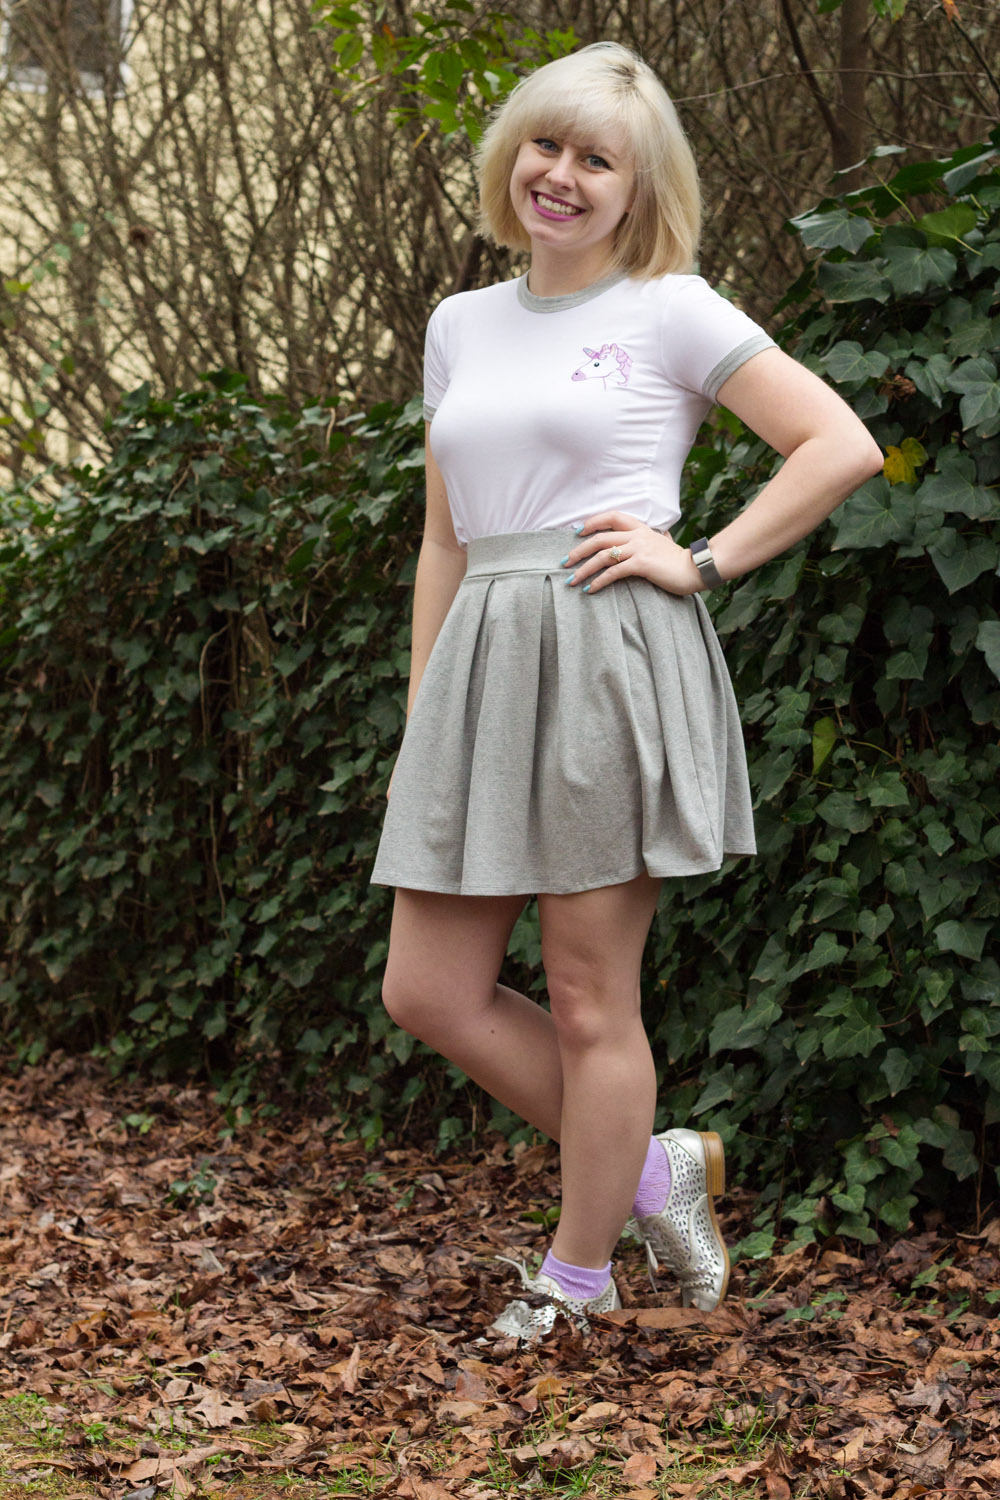 Embroidered F21 Unicorn Shirt, Pleated Jersey Knit Skirt, Silver Shoes, and Purple Socks